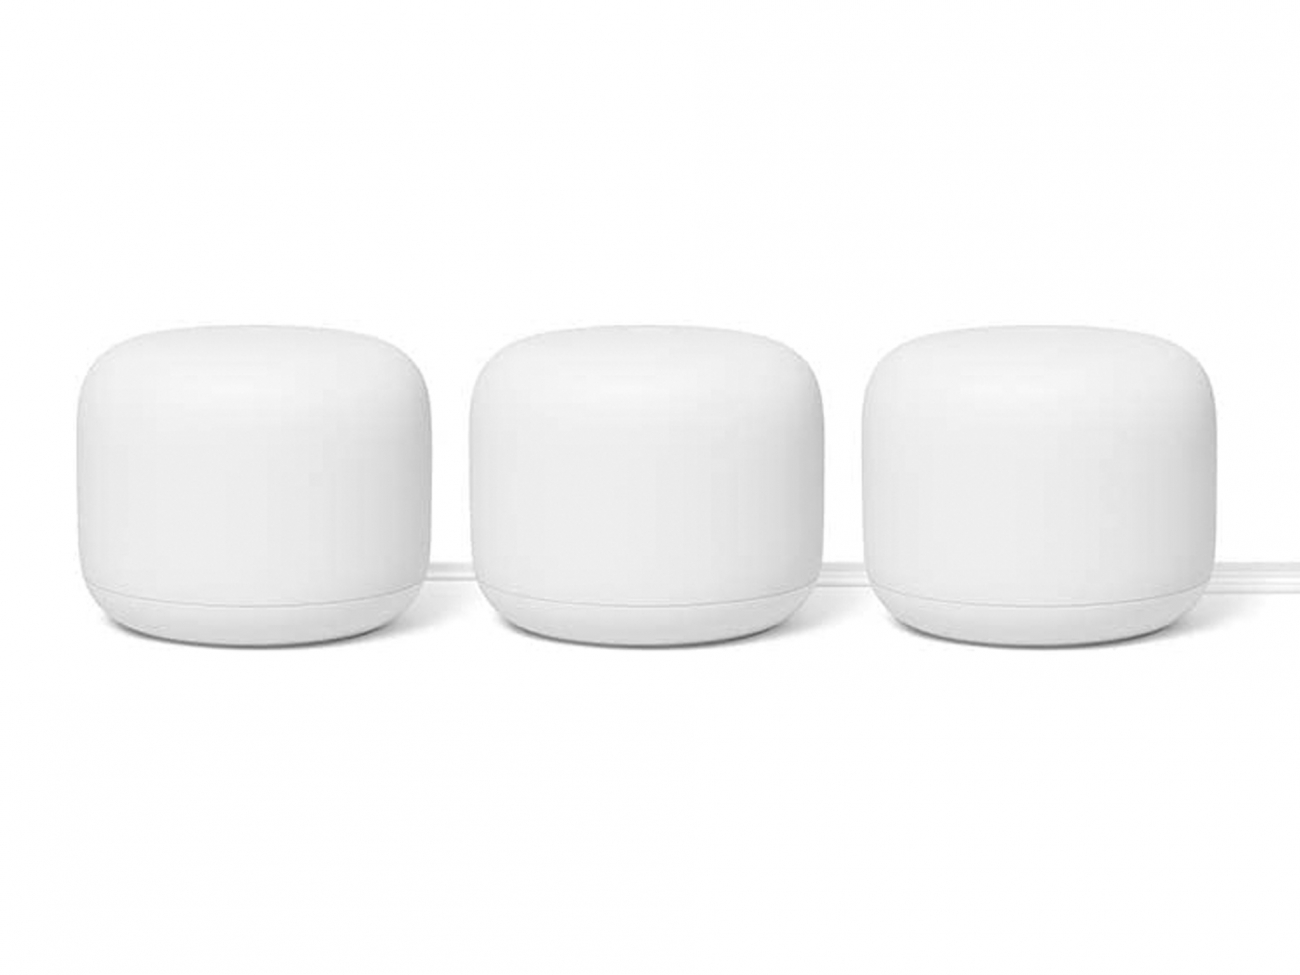 Google Nest Wi-Fi Router. Wi-Fi роутер: 3-Pack